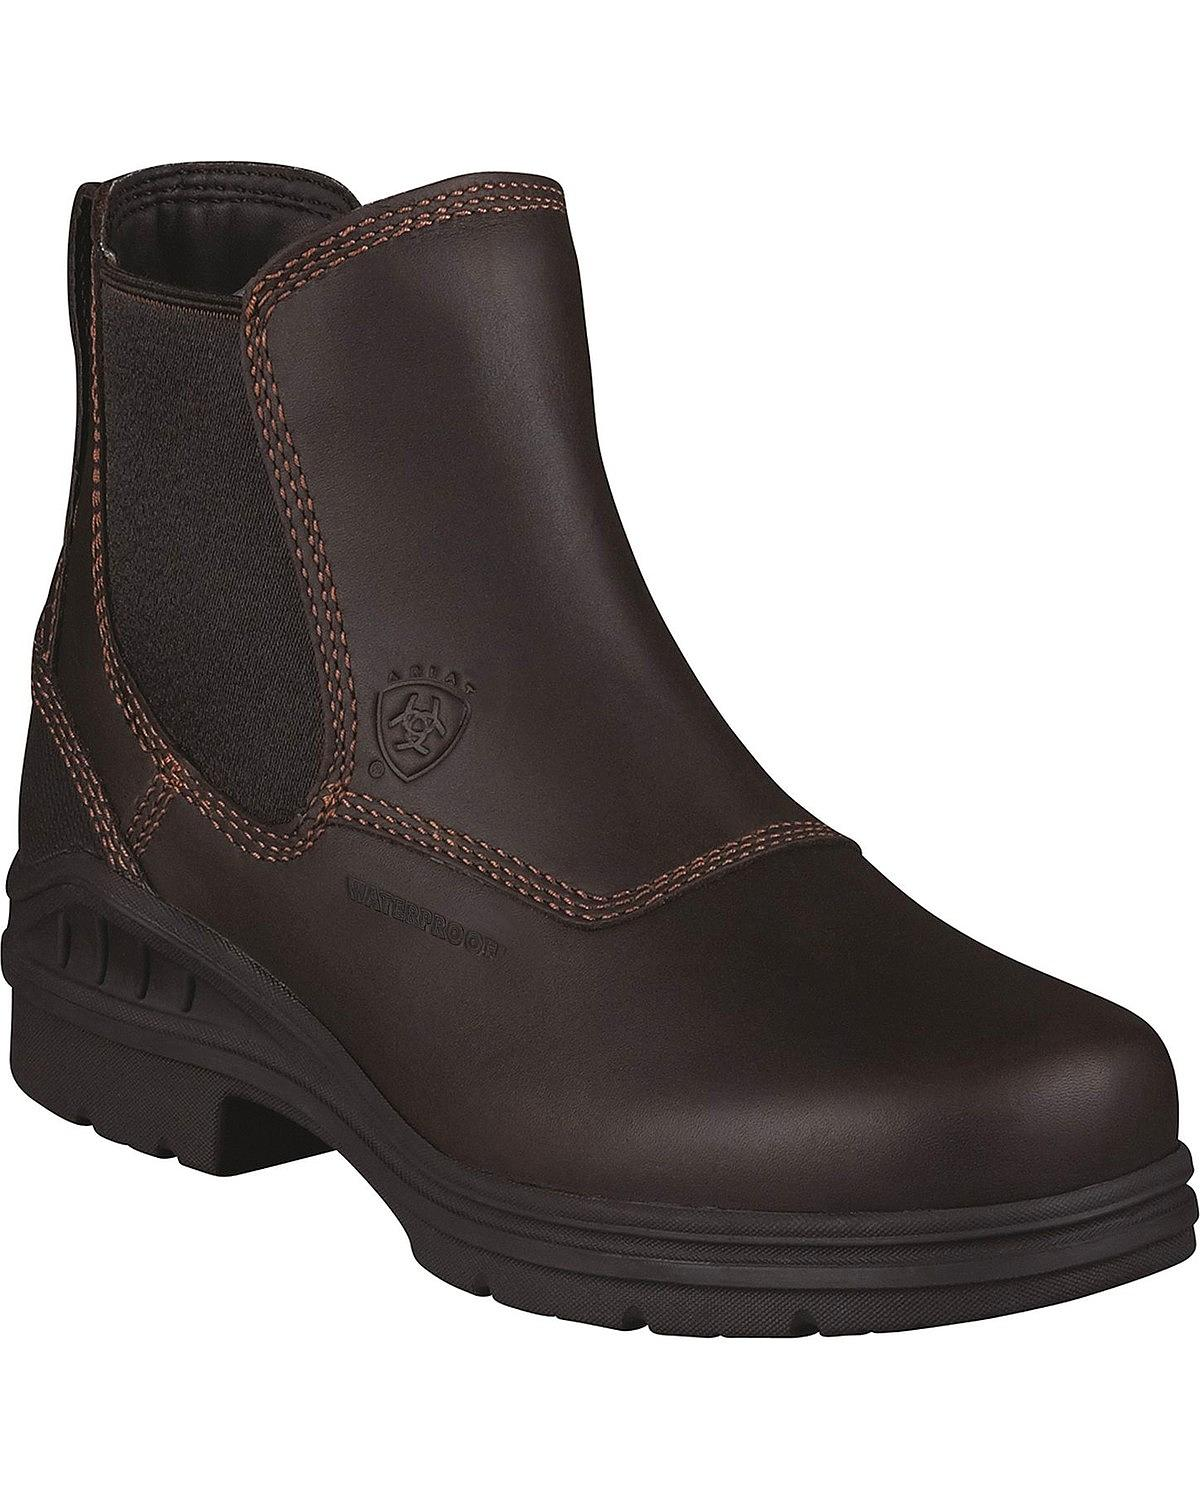 "Ariat 10003574 Barnyard Twin Gore H2O 6"" Slip On Riding Boots Waterproof by Ariat"